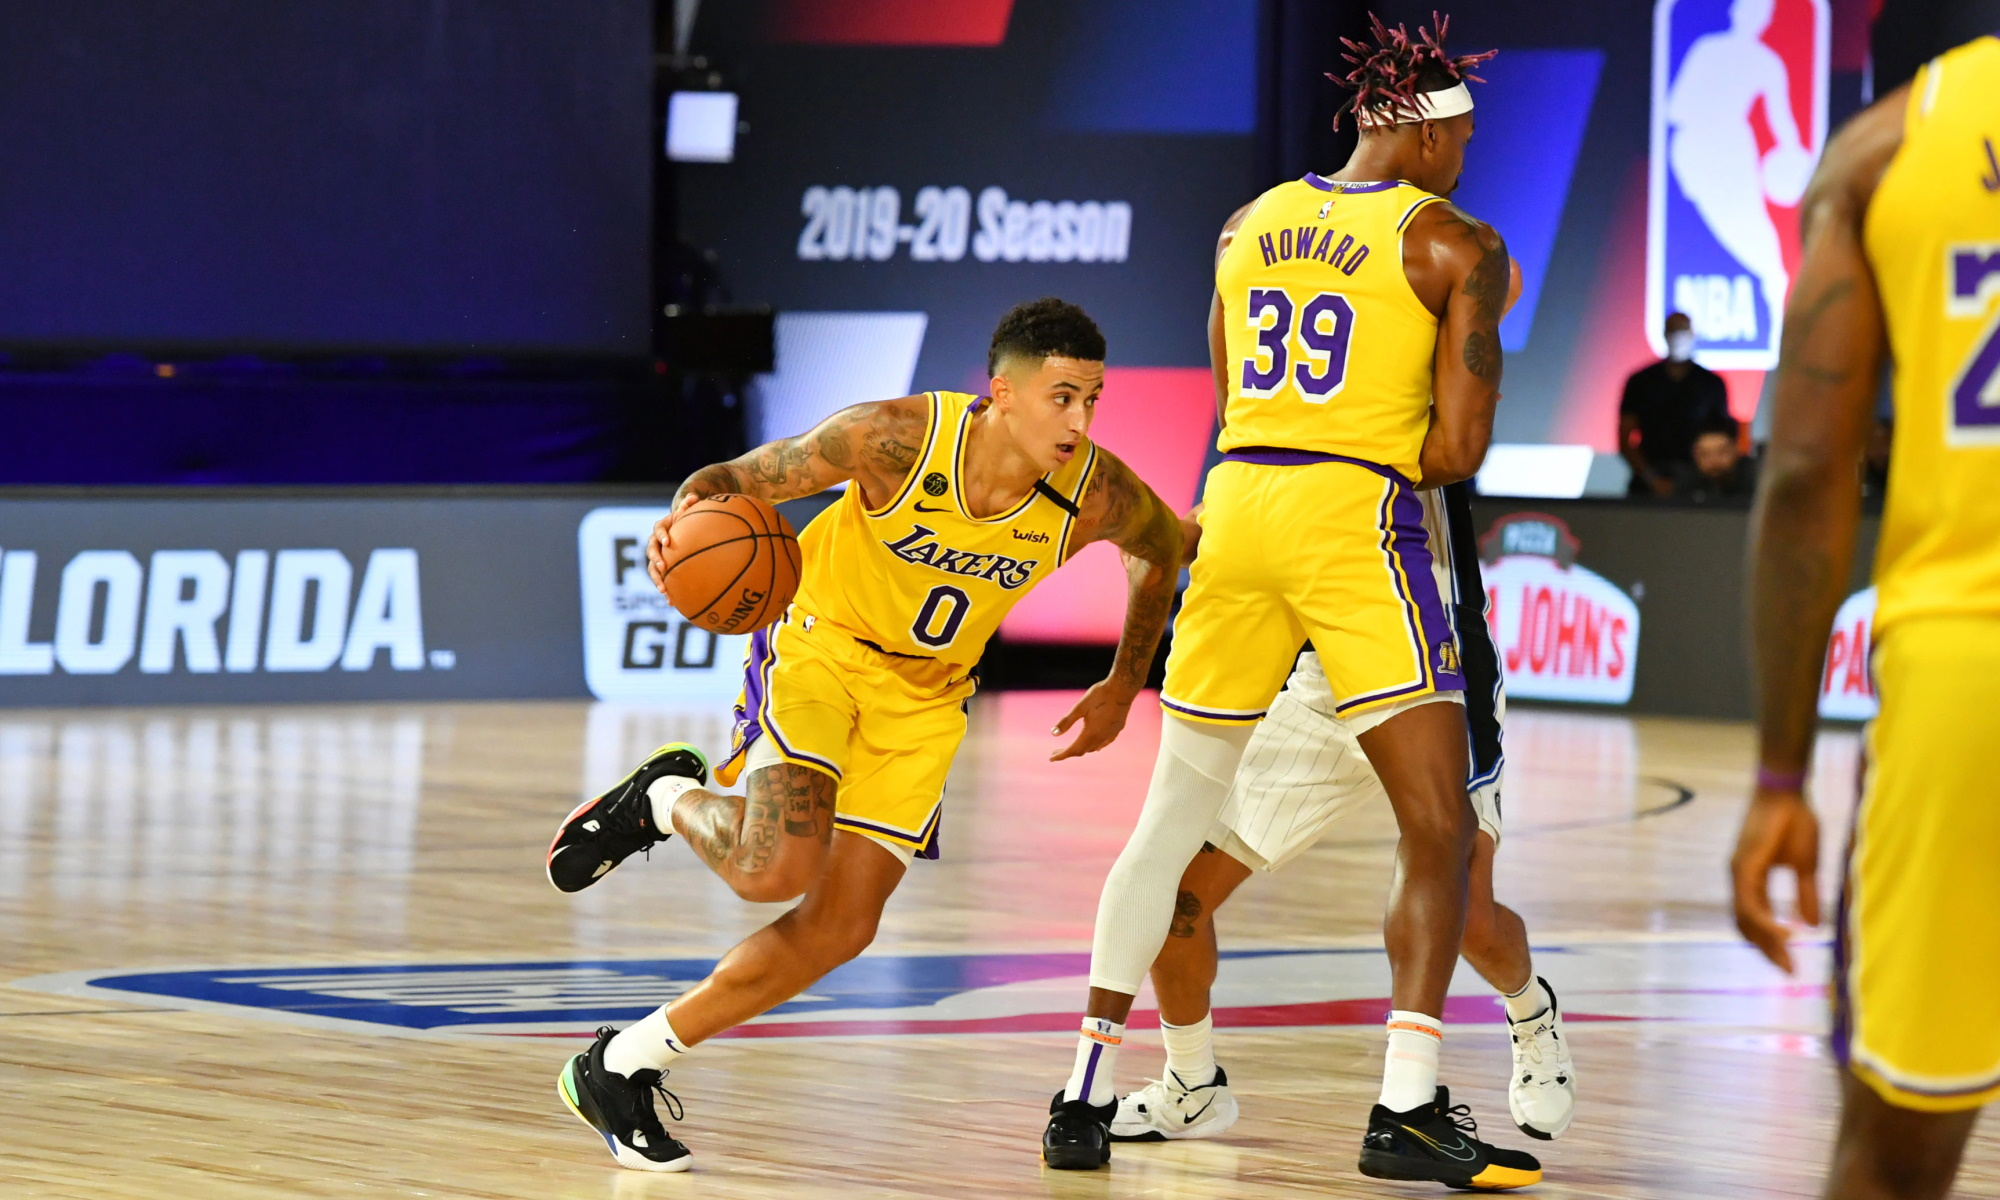 Kyle Kuzma #0 of the Los Angeles Lakers handles the ball against the Orlando Magic during a scrimmage on July 25, 2020 at HP Field House at ESPN Wide World of Sports in Orlando, Florida.